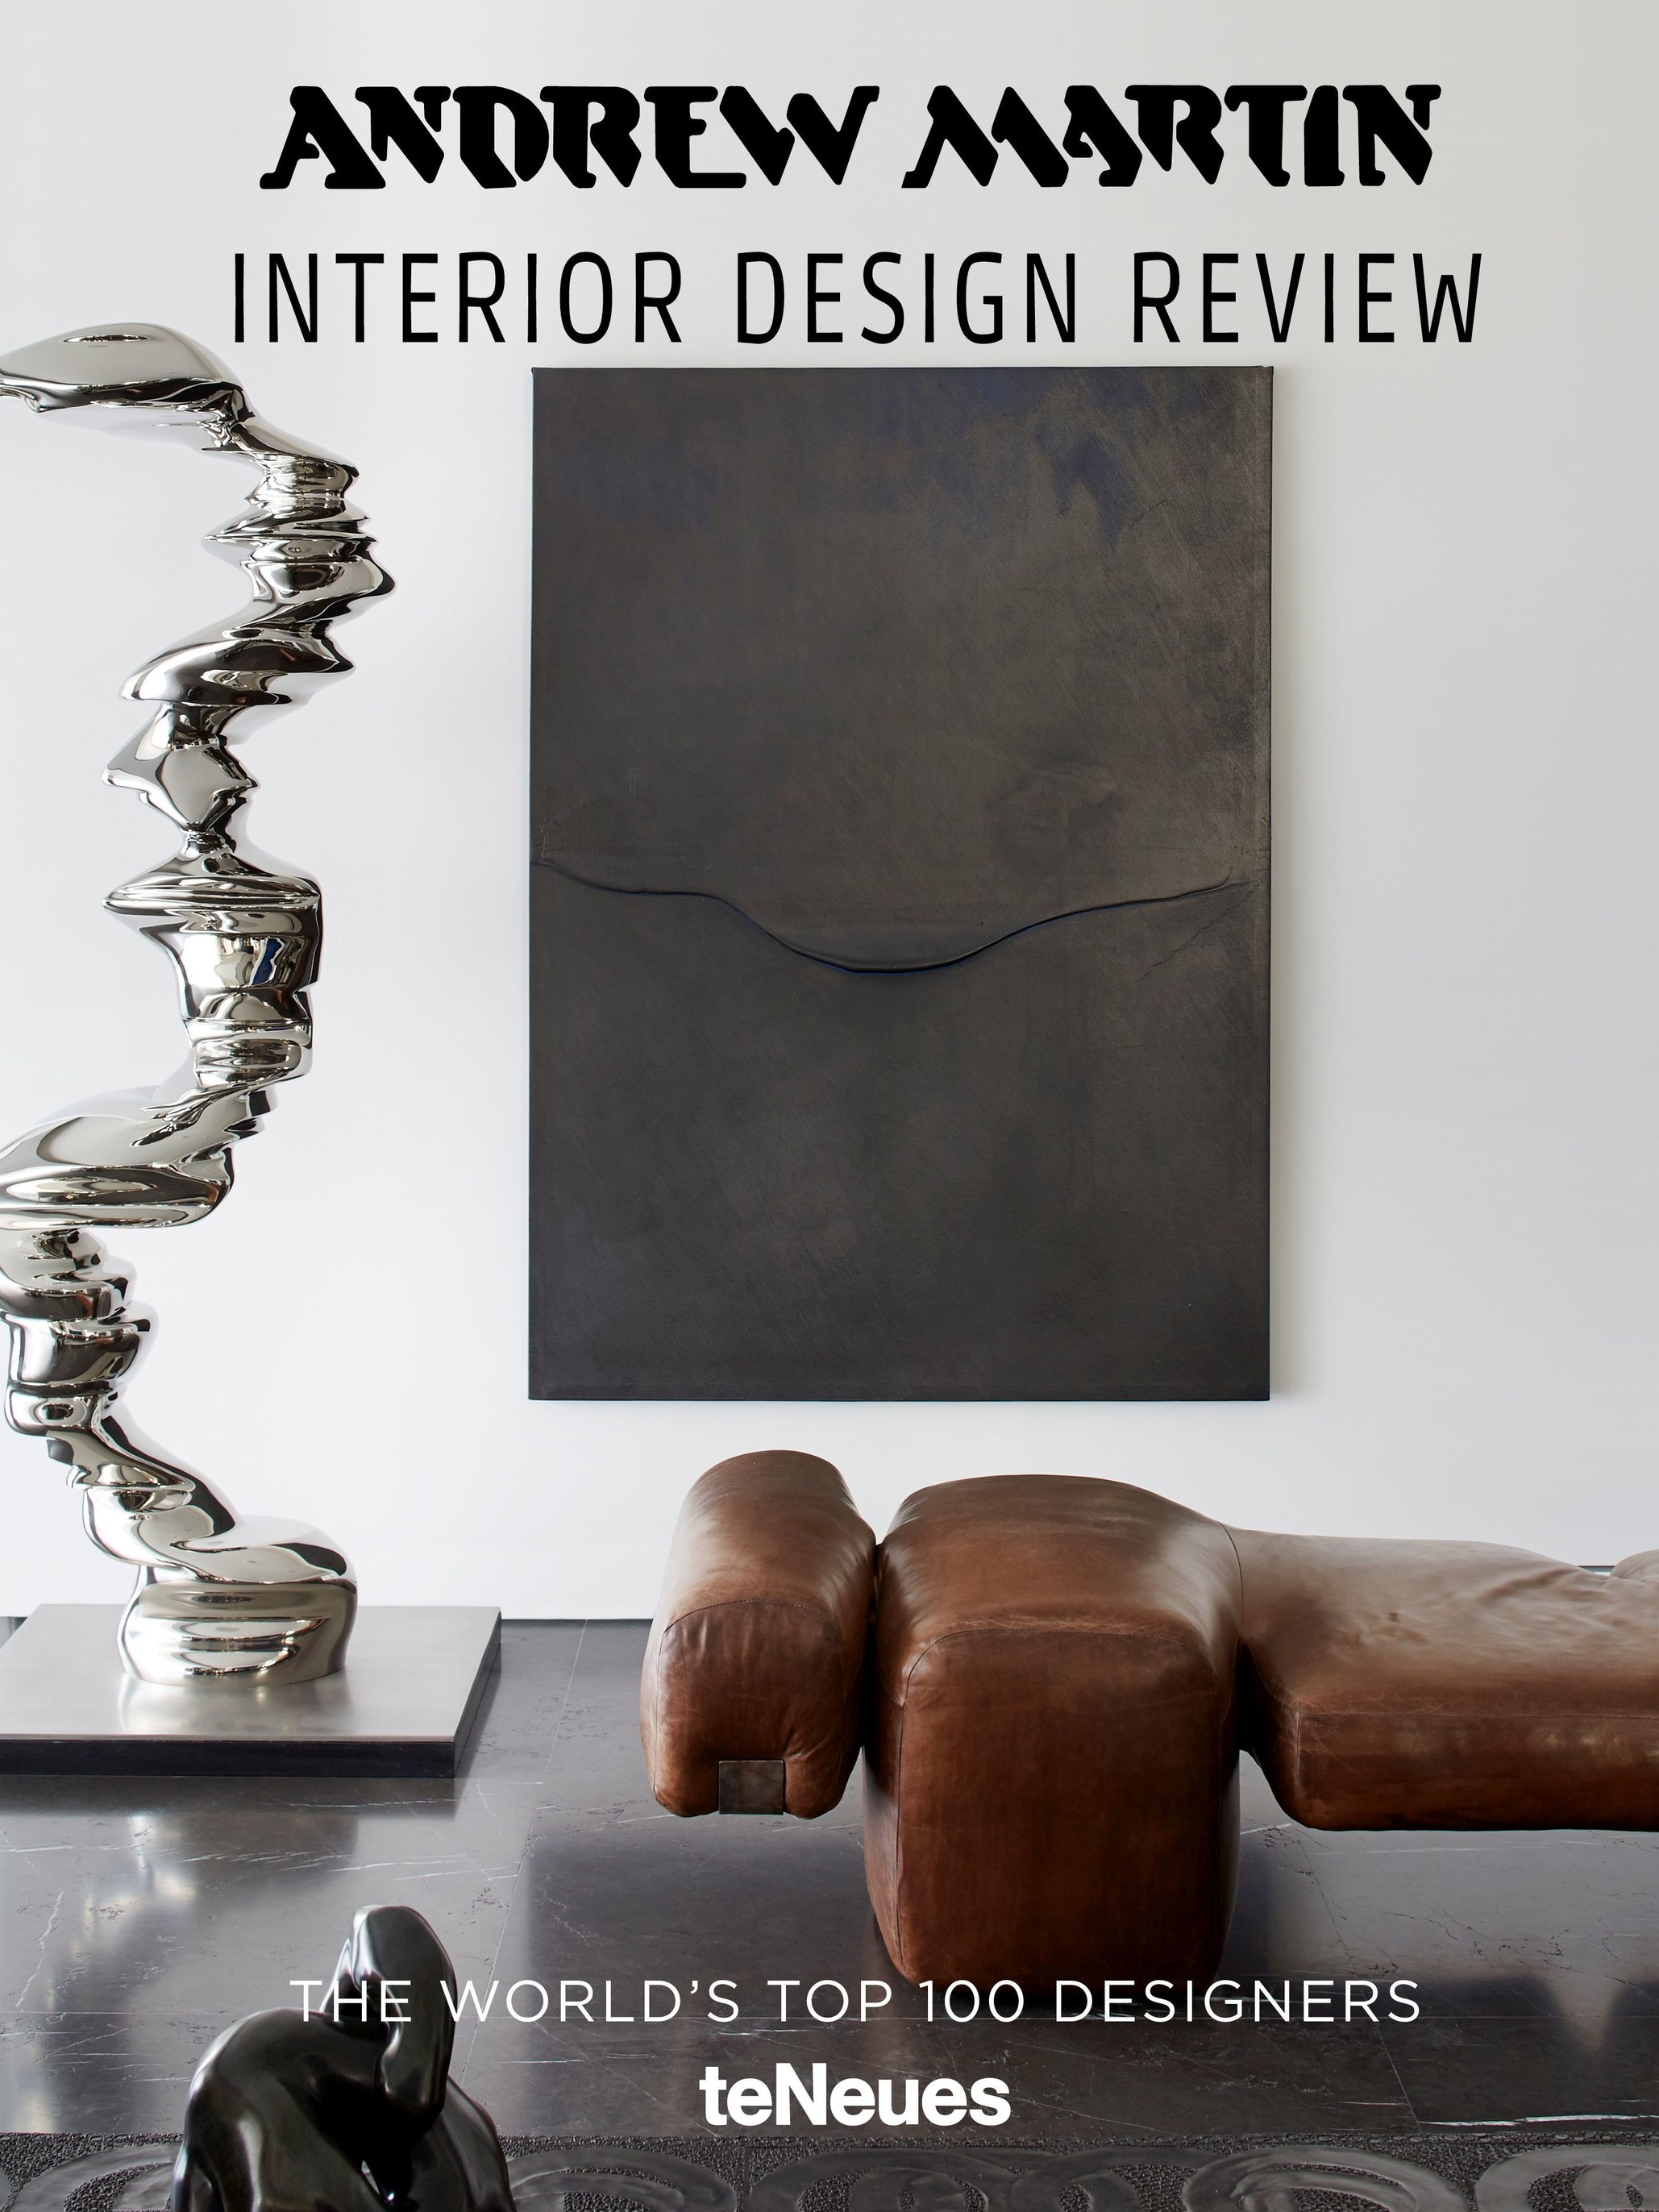 Designed by Woulfe - Andrew Martin, Interior Design Review, VOL.21